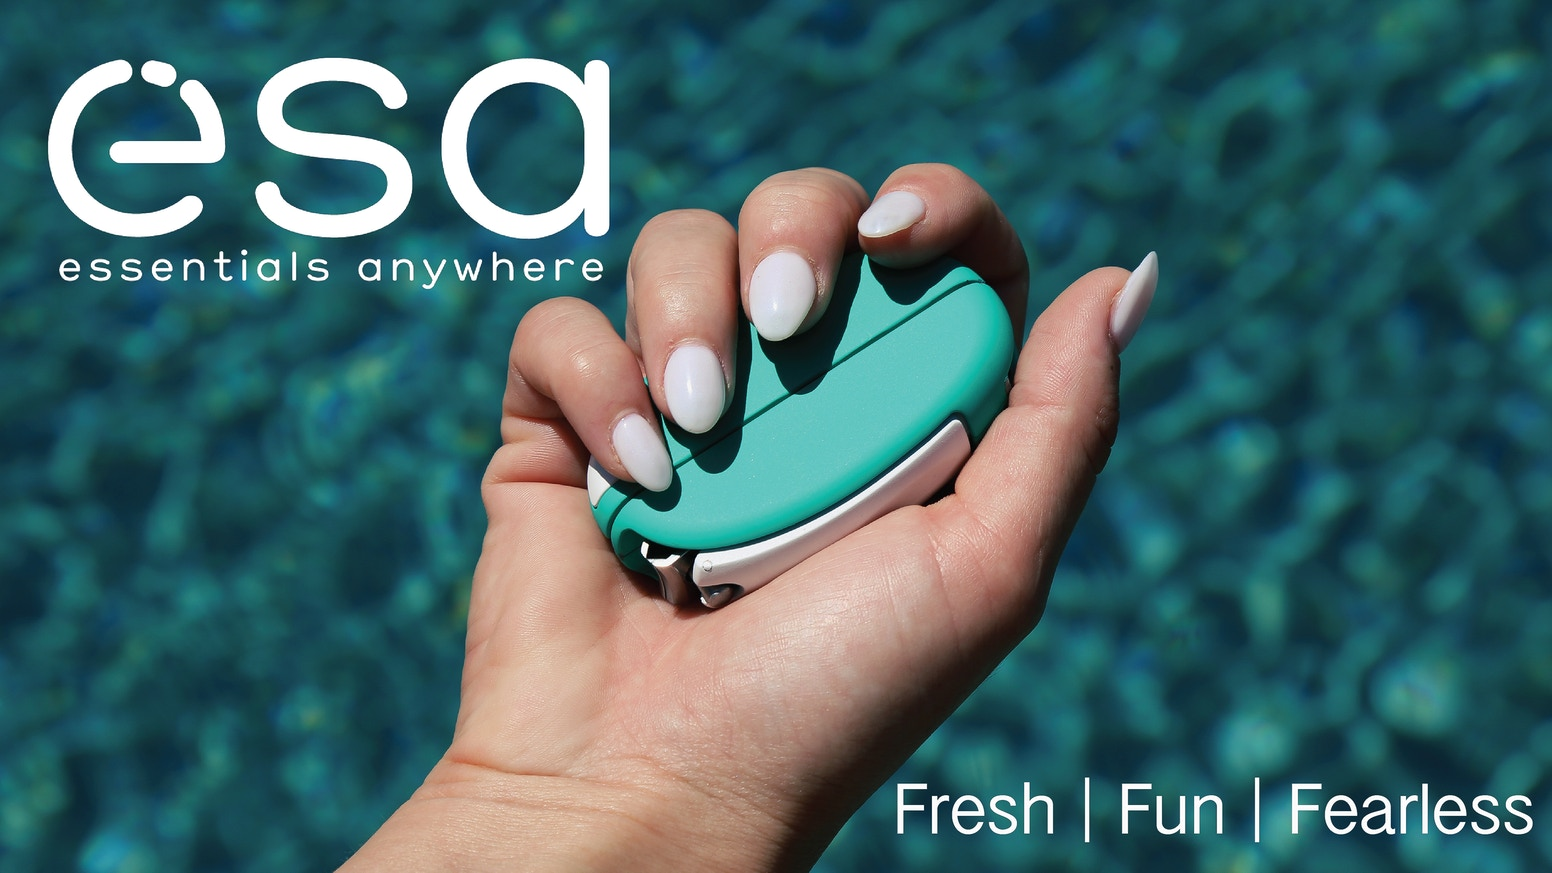 Meet esa Go, the world's most compact 7-in-1 cosmetic multi-tool. Great for on-the-go or at home. Complete premium nail kit & tweezers